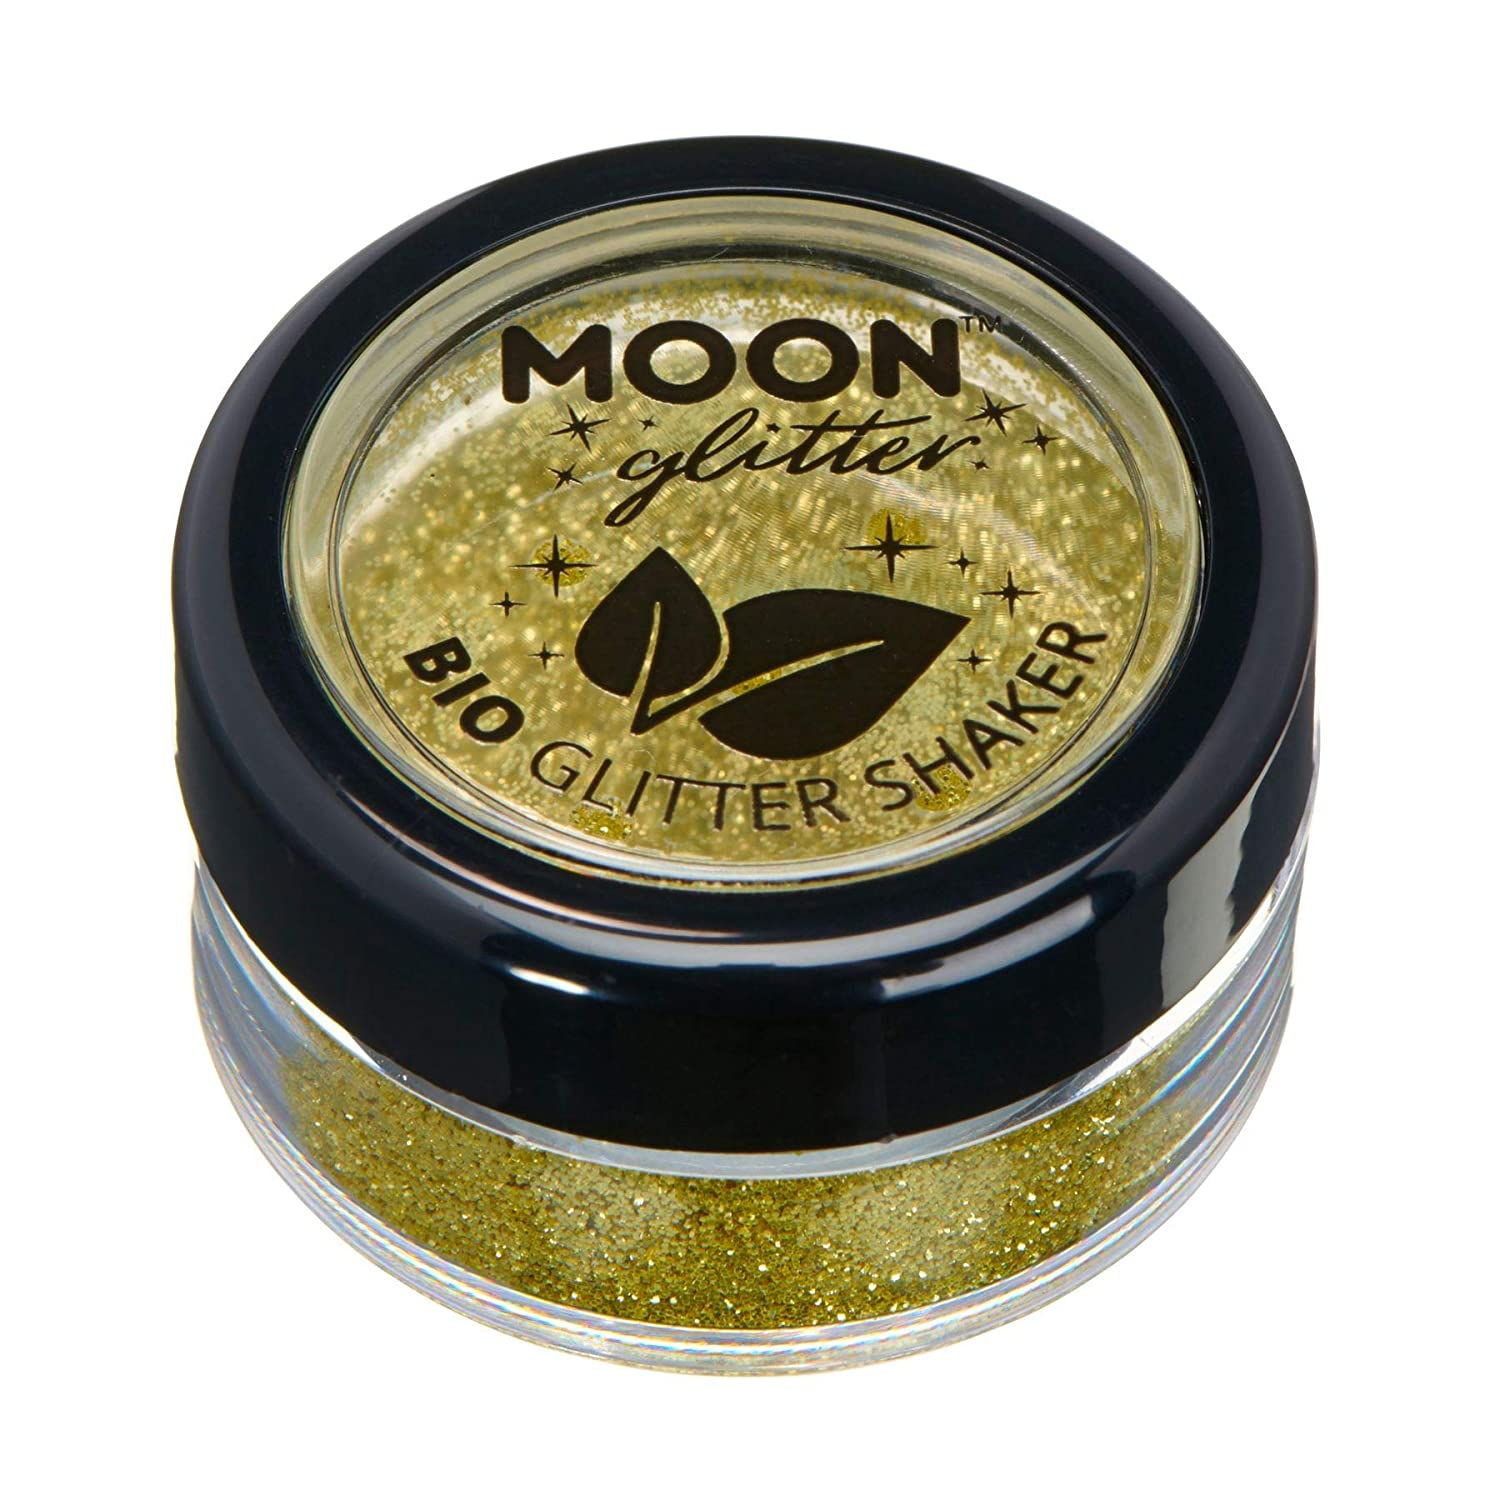 Biodegradable Eco Glitter Shakers by Moon Glitter - 100% Cosmetic Bio Glitter for Face, Body, Nails, Hair and Lips - 5g - Green